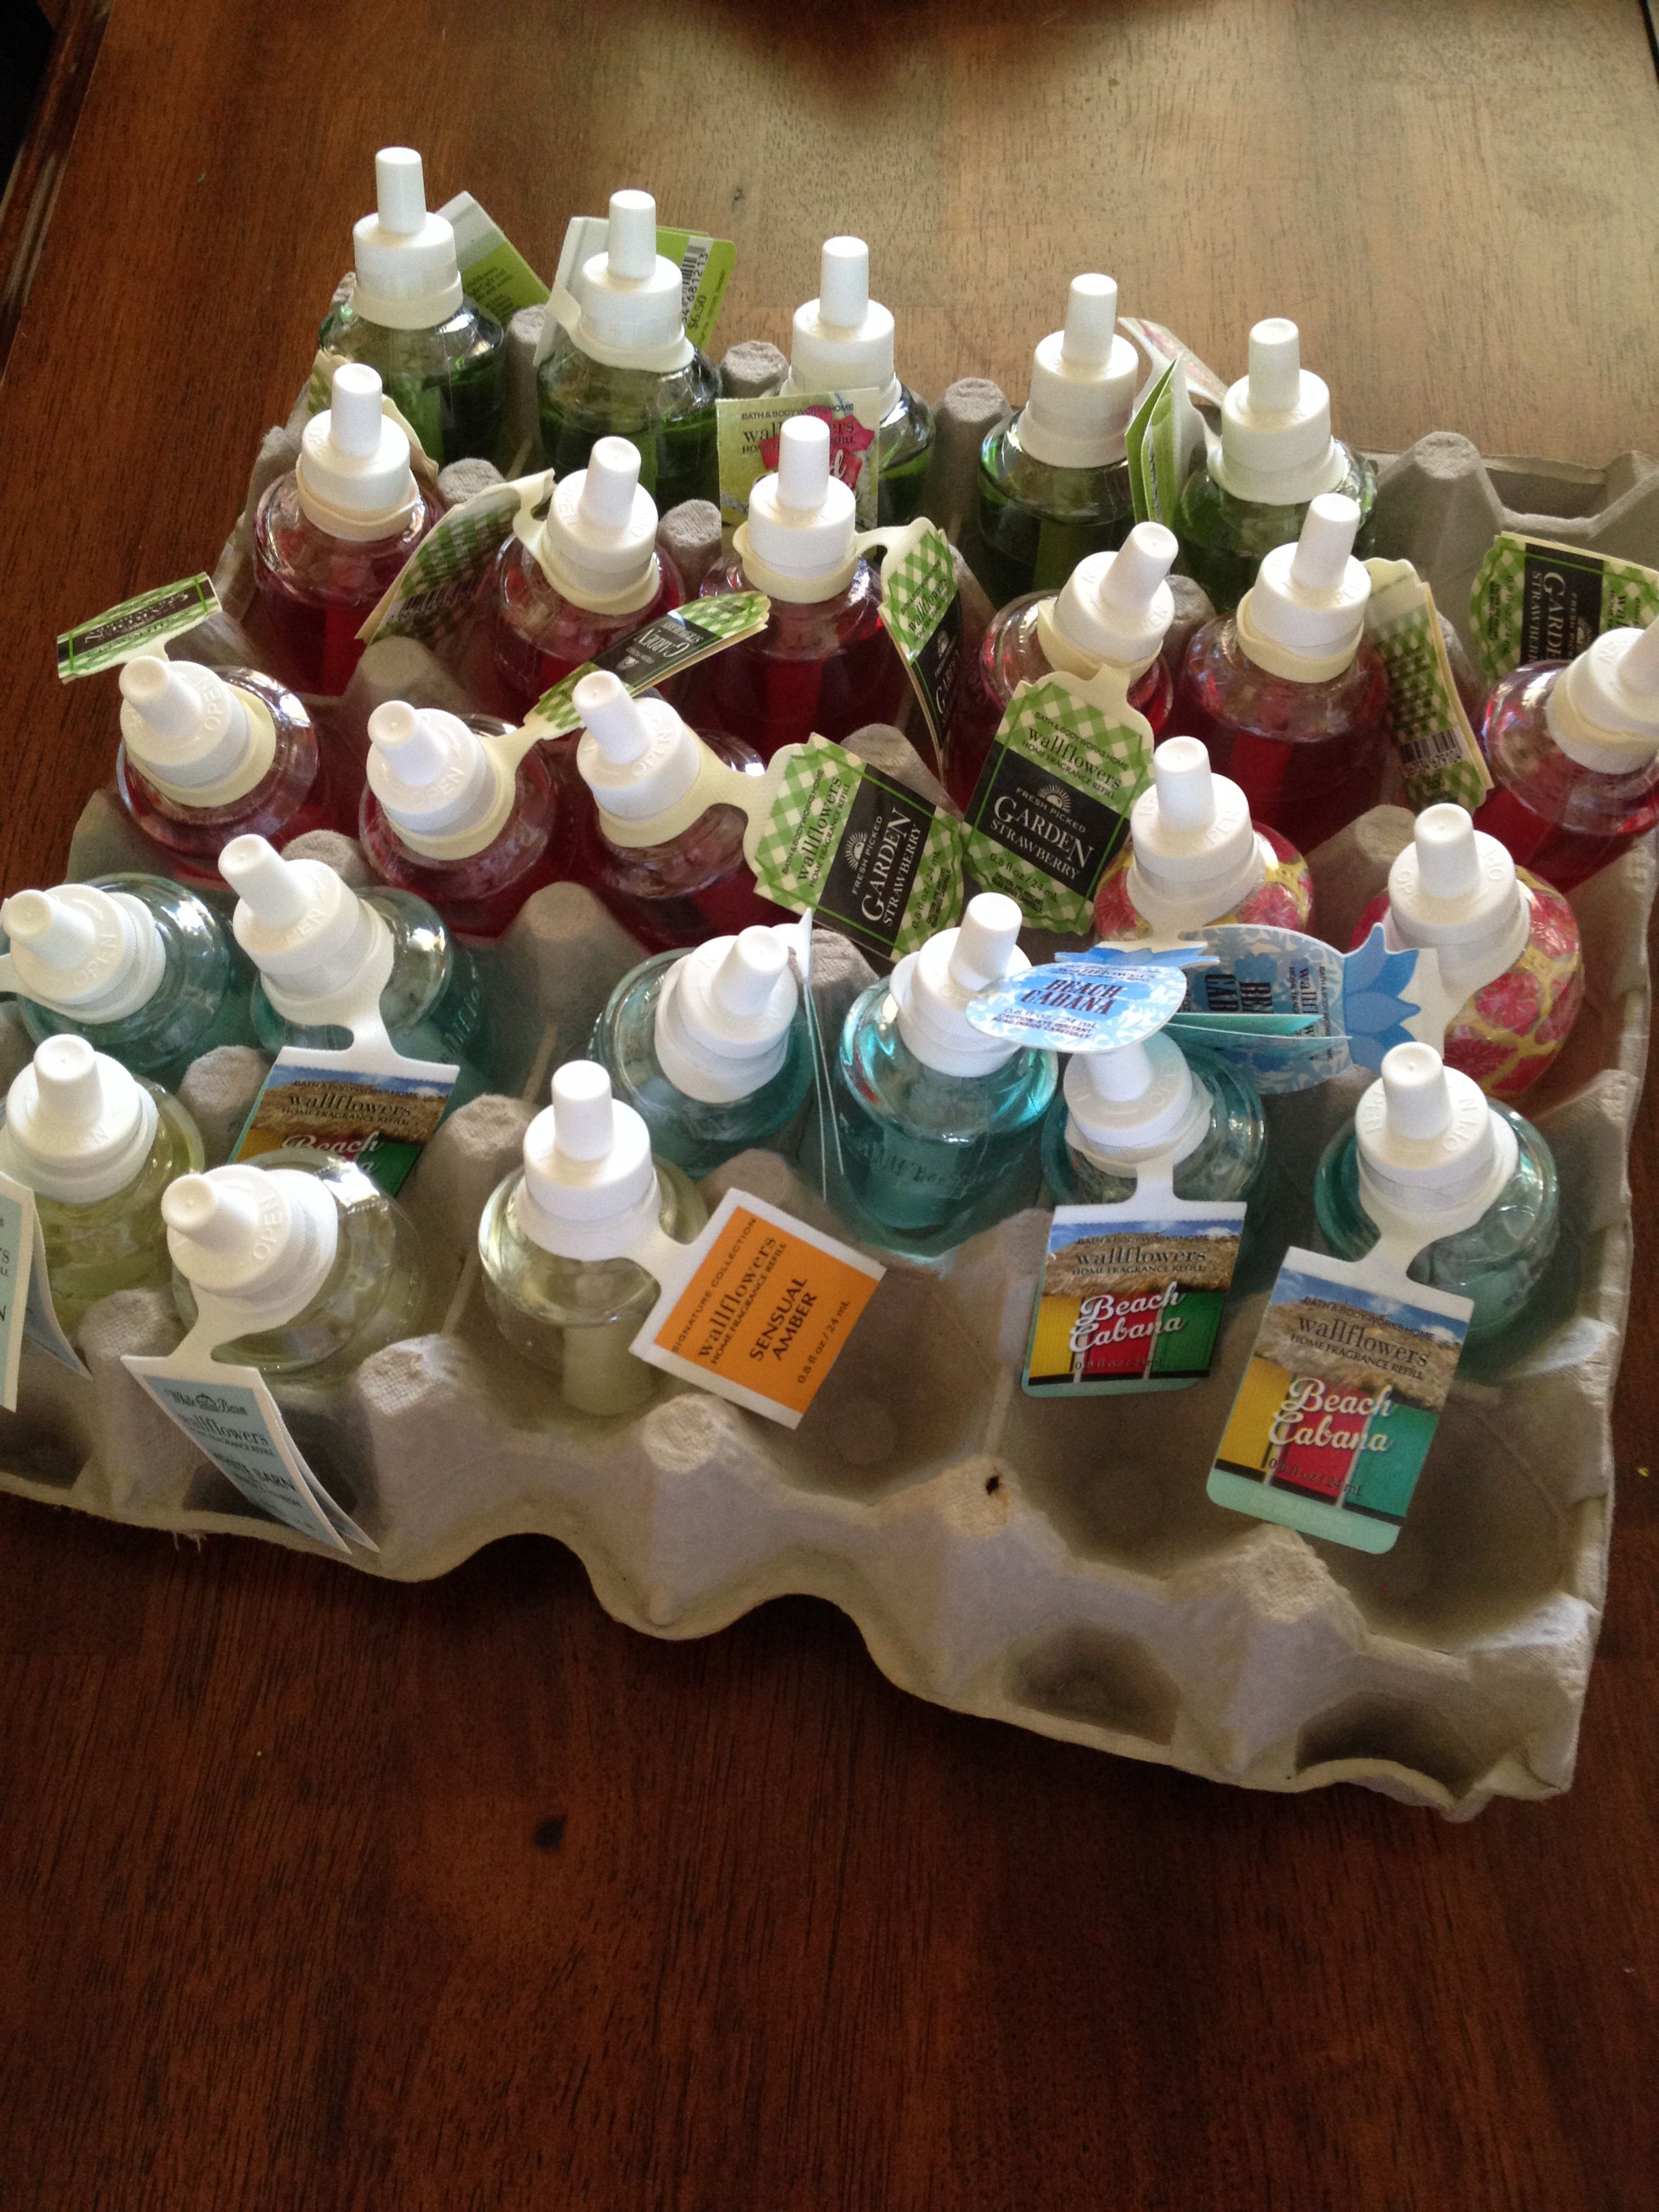 Bath Body Works Wallflower Storage Put Them In An Egg Carton To Keep Them From Tipping Over And Leaking K Bath And Body Candles Storage Bath And Body Works